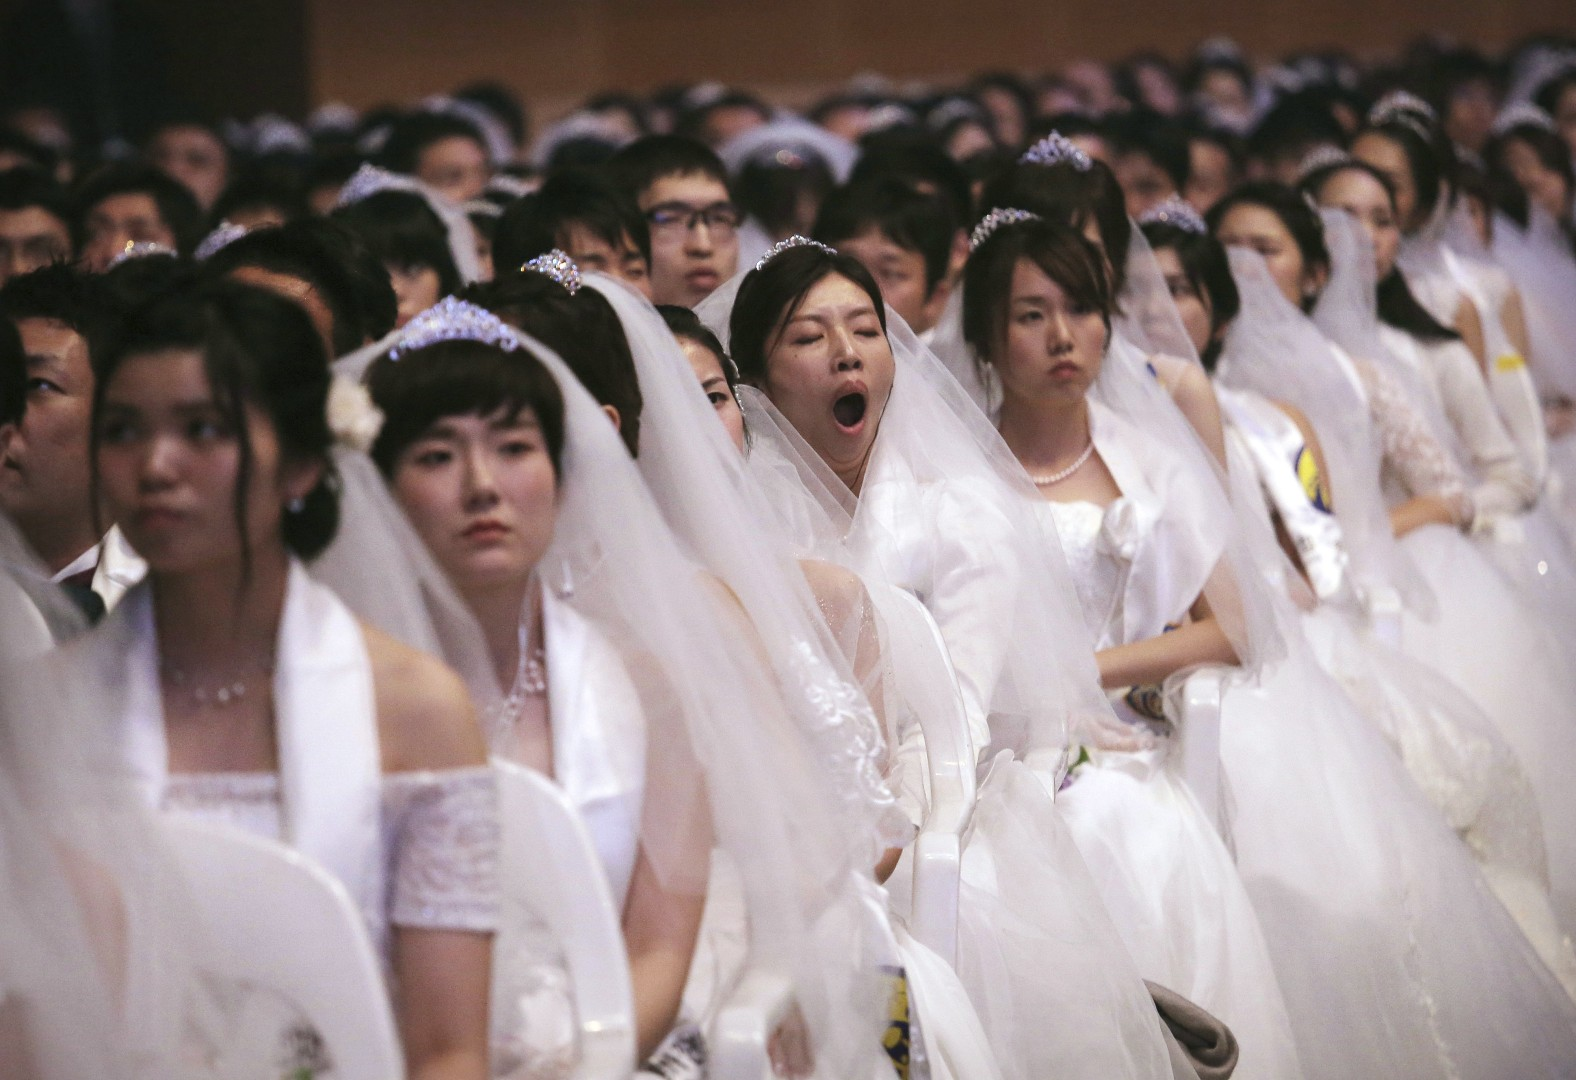 Single minded: forget marriage, South Koreans aren't even dating